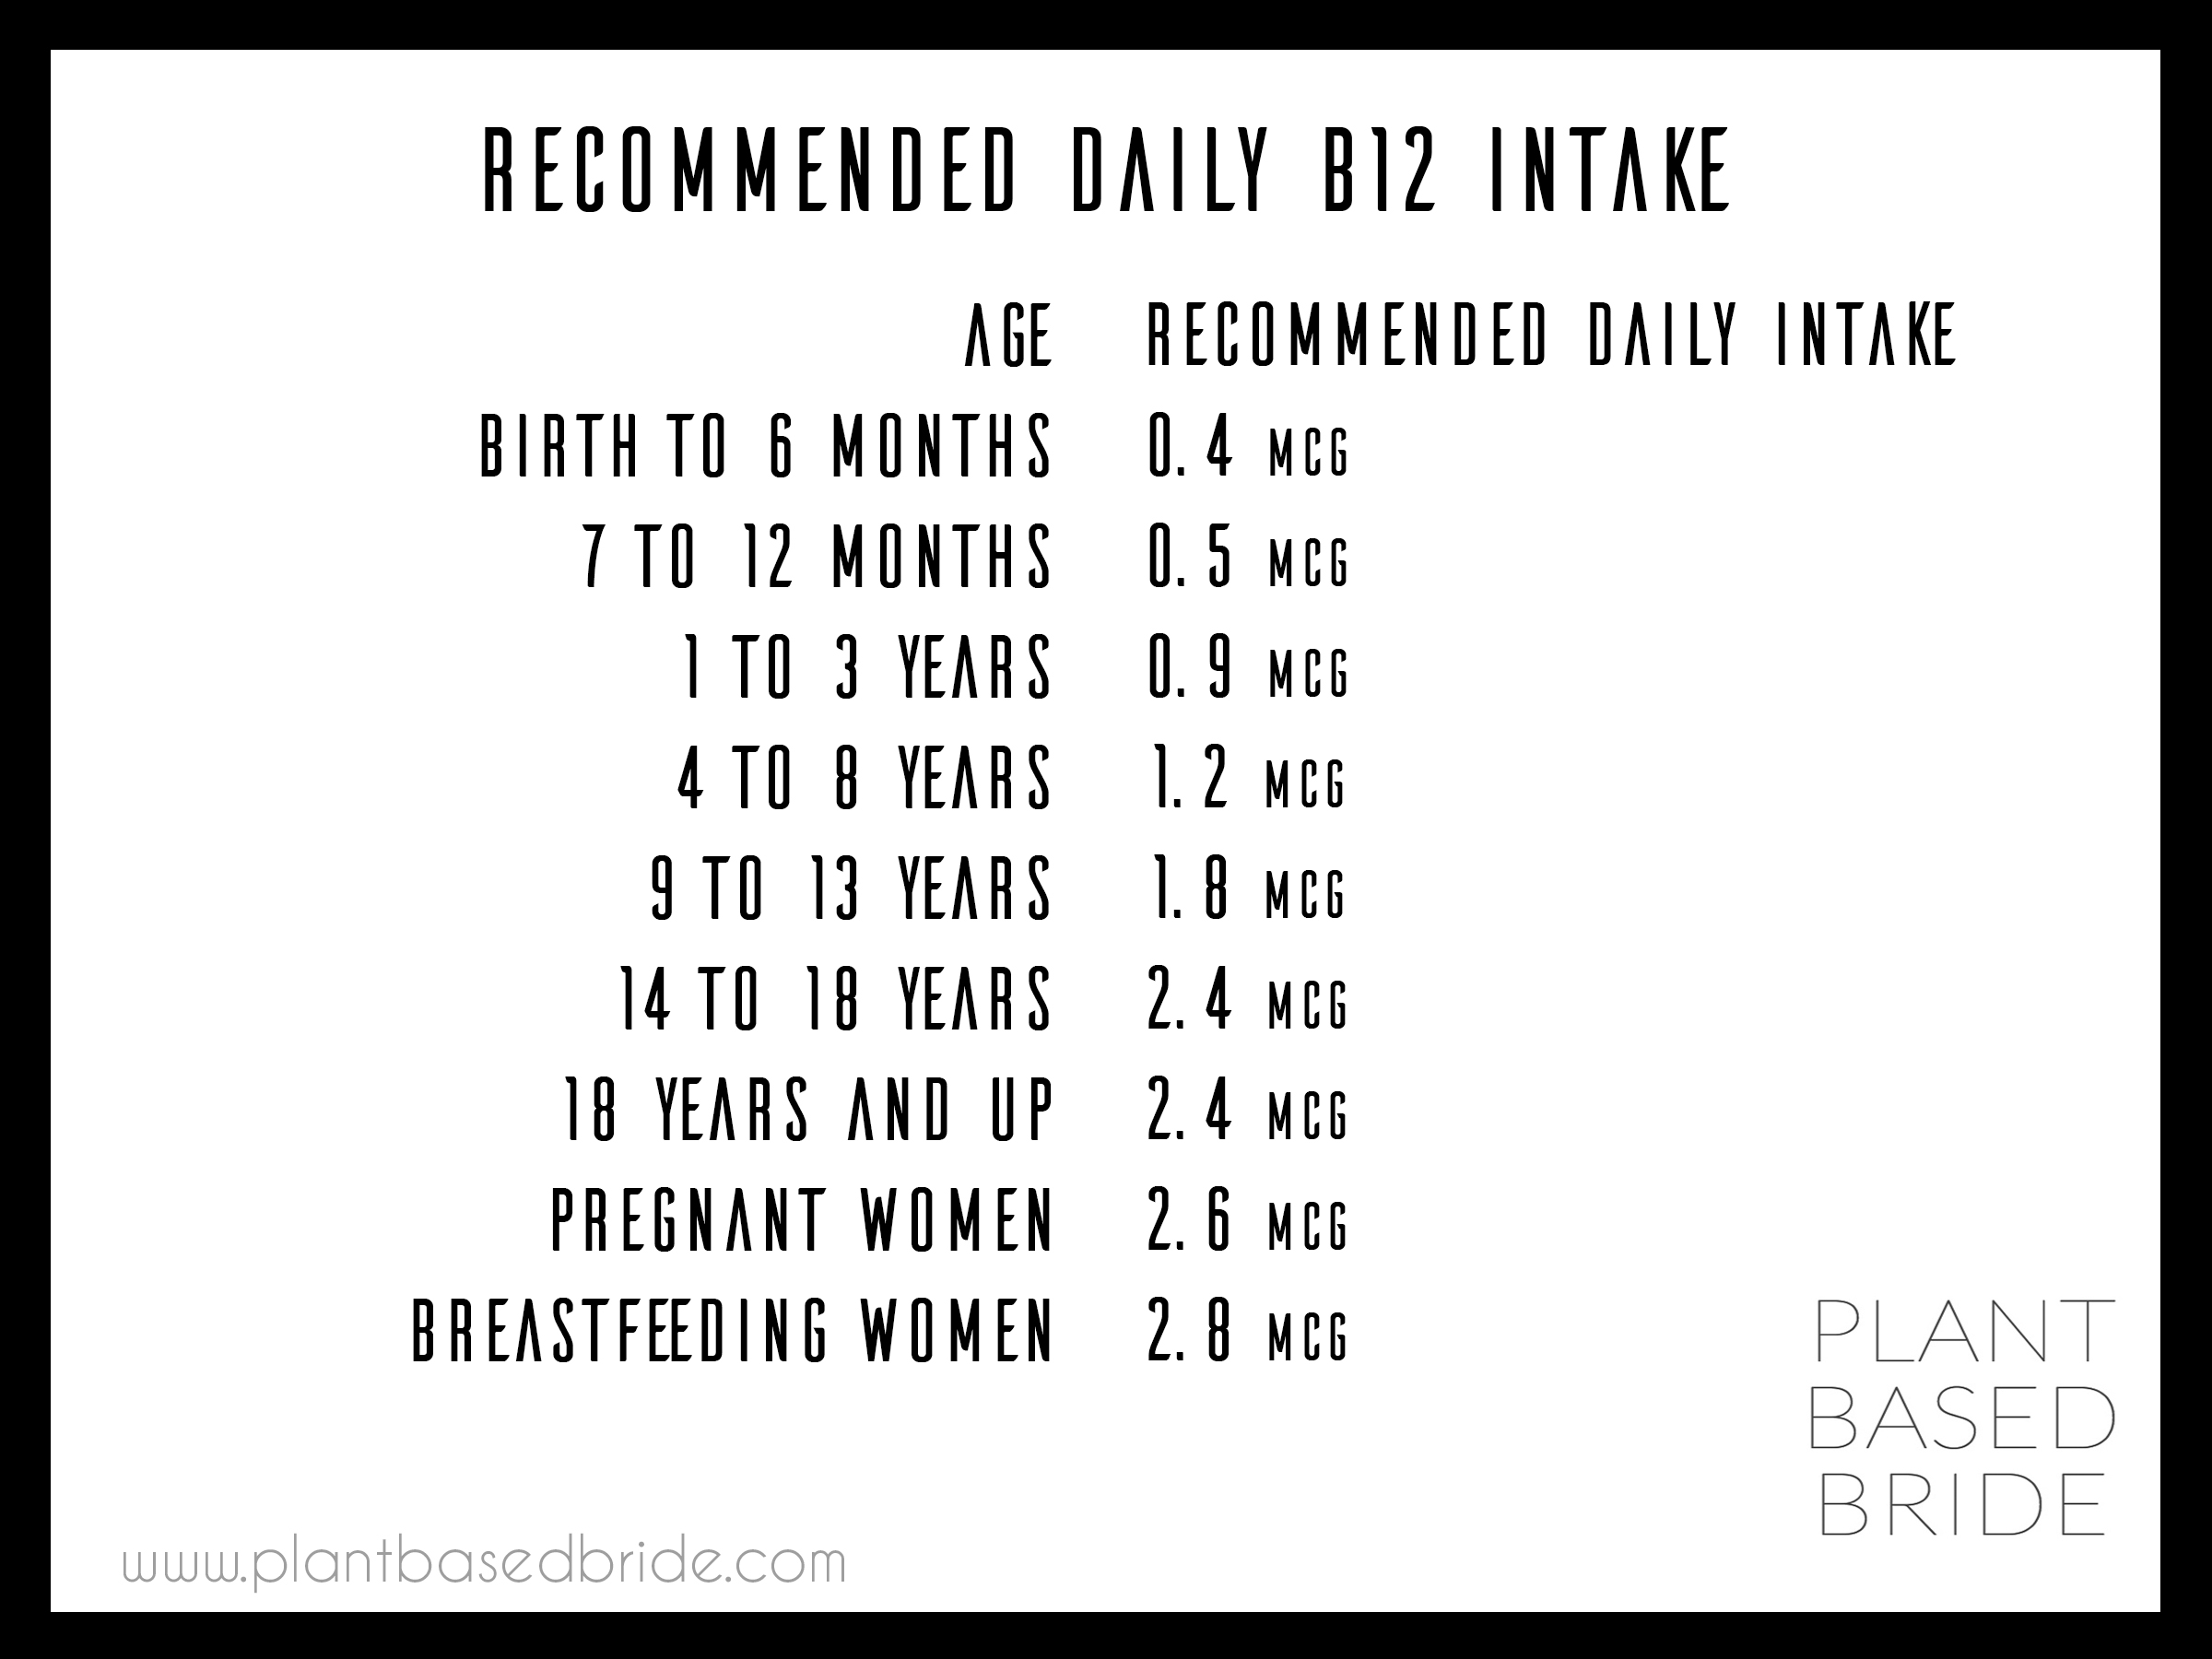 Daily recommended intake of B12 by age from plantbasedbride.com!